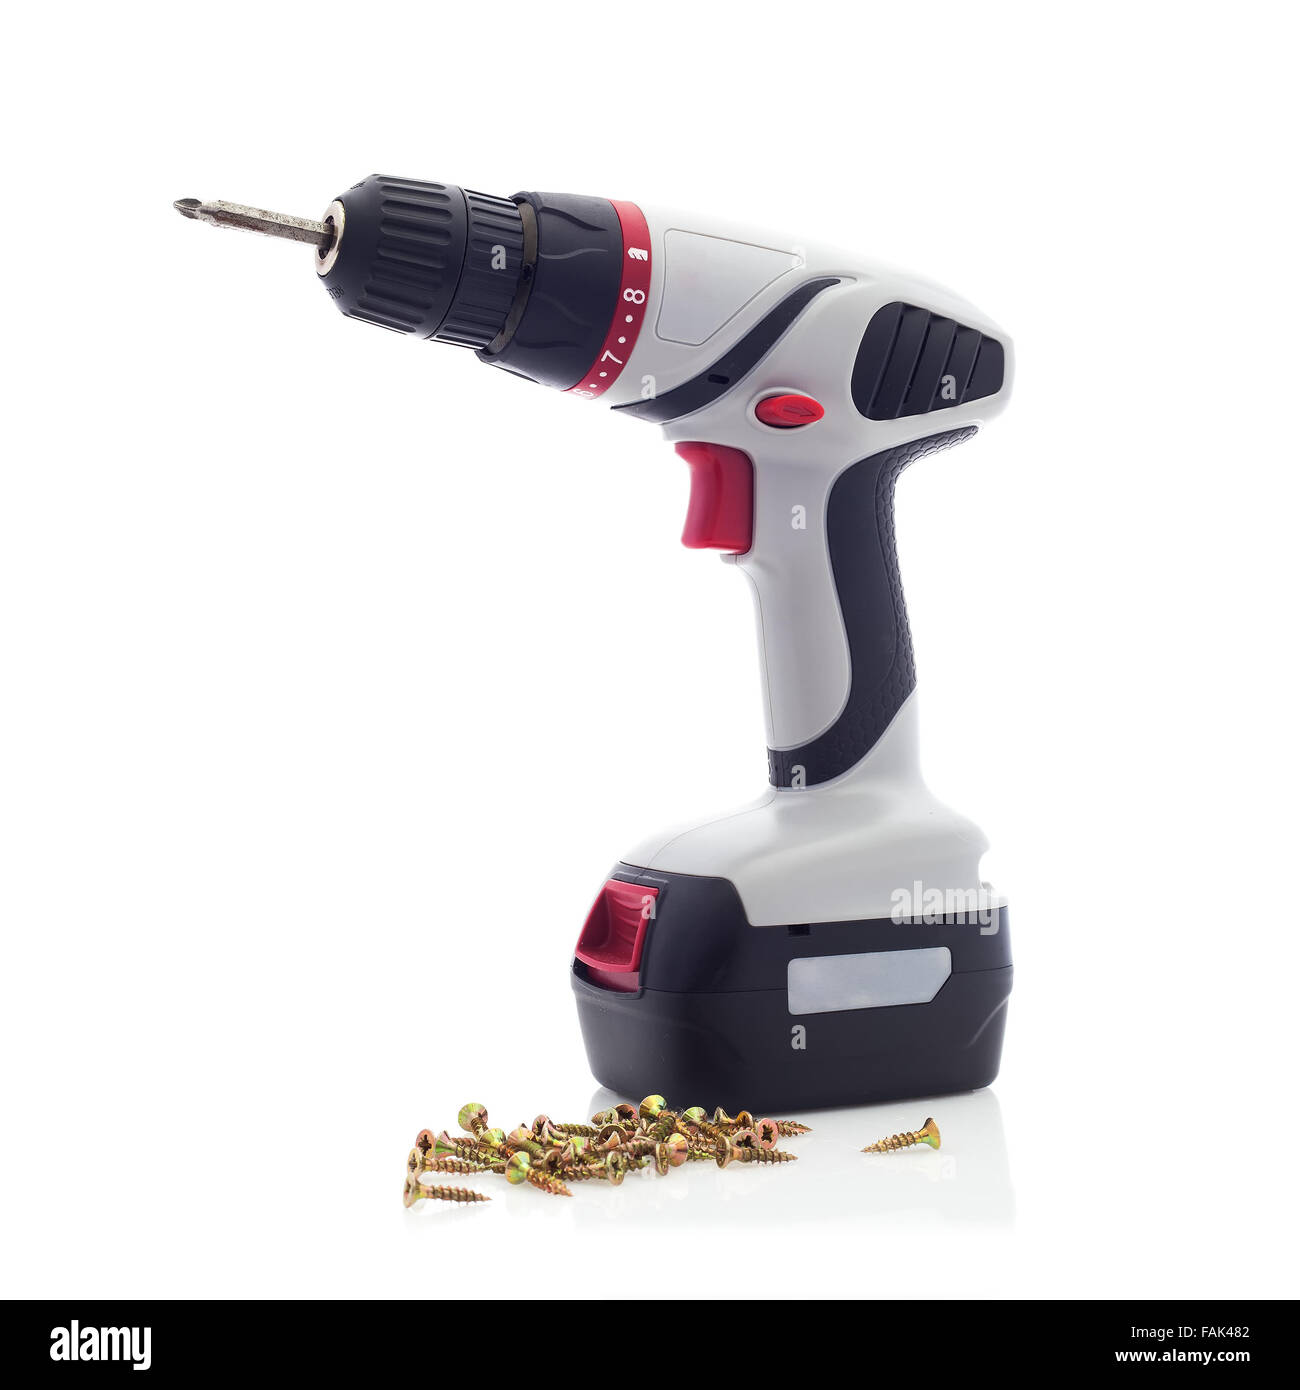 Cordless Drill with Screwdriver Bit and Screws on a White Background - Stock Image